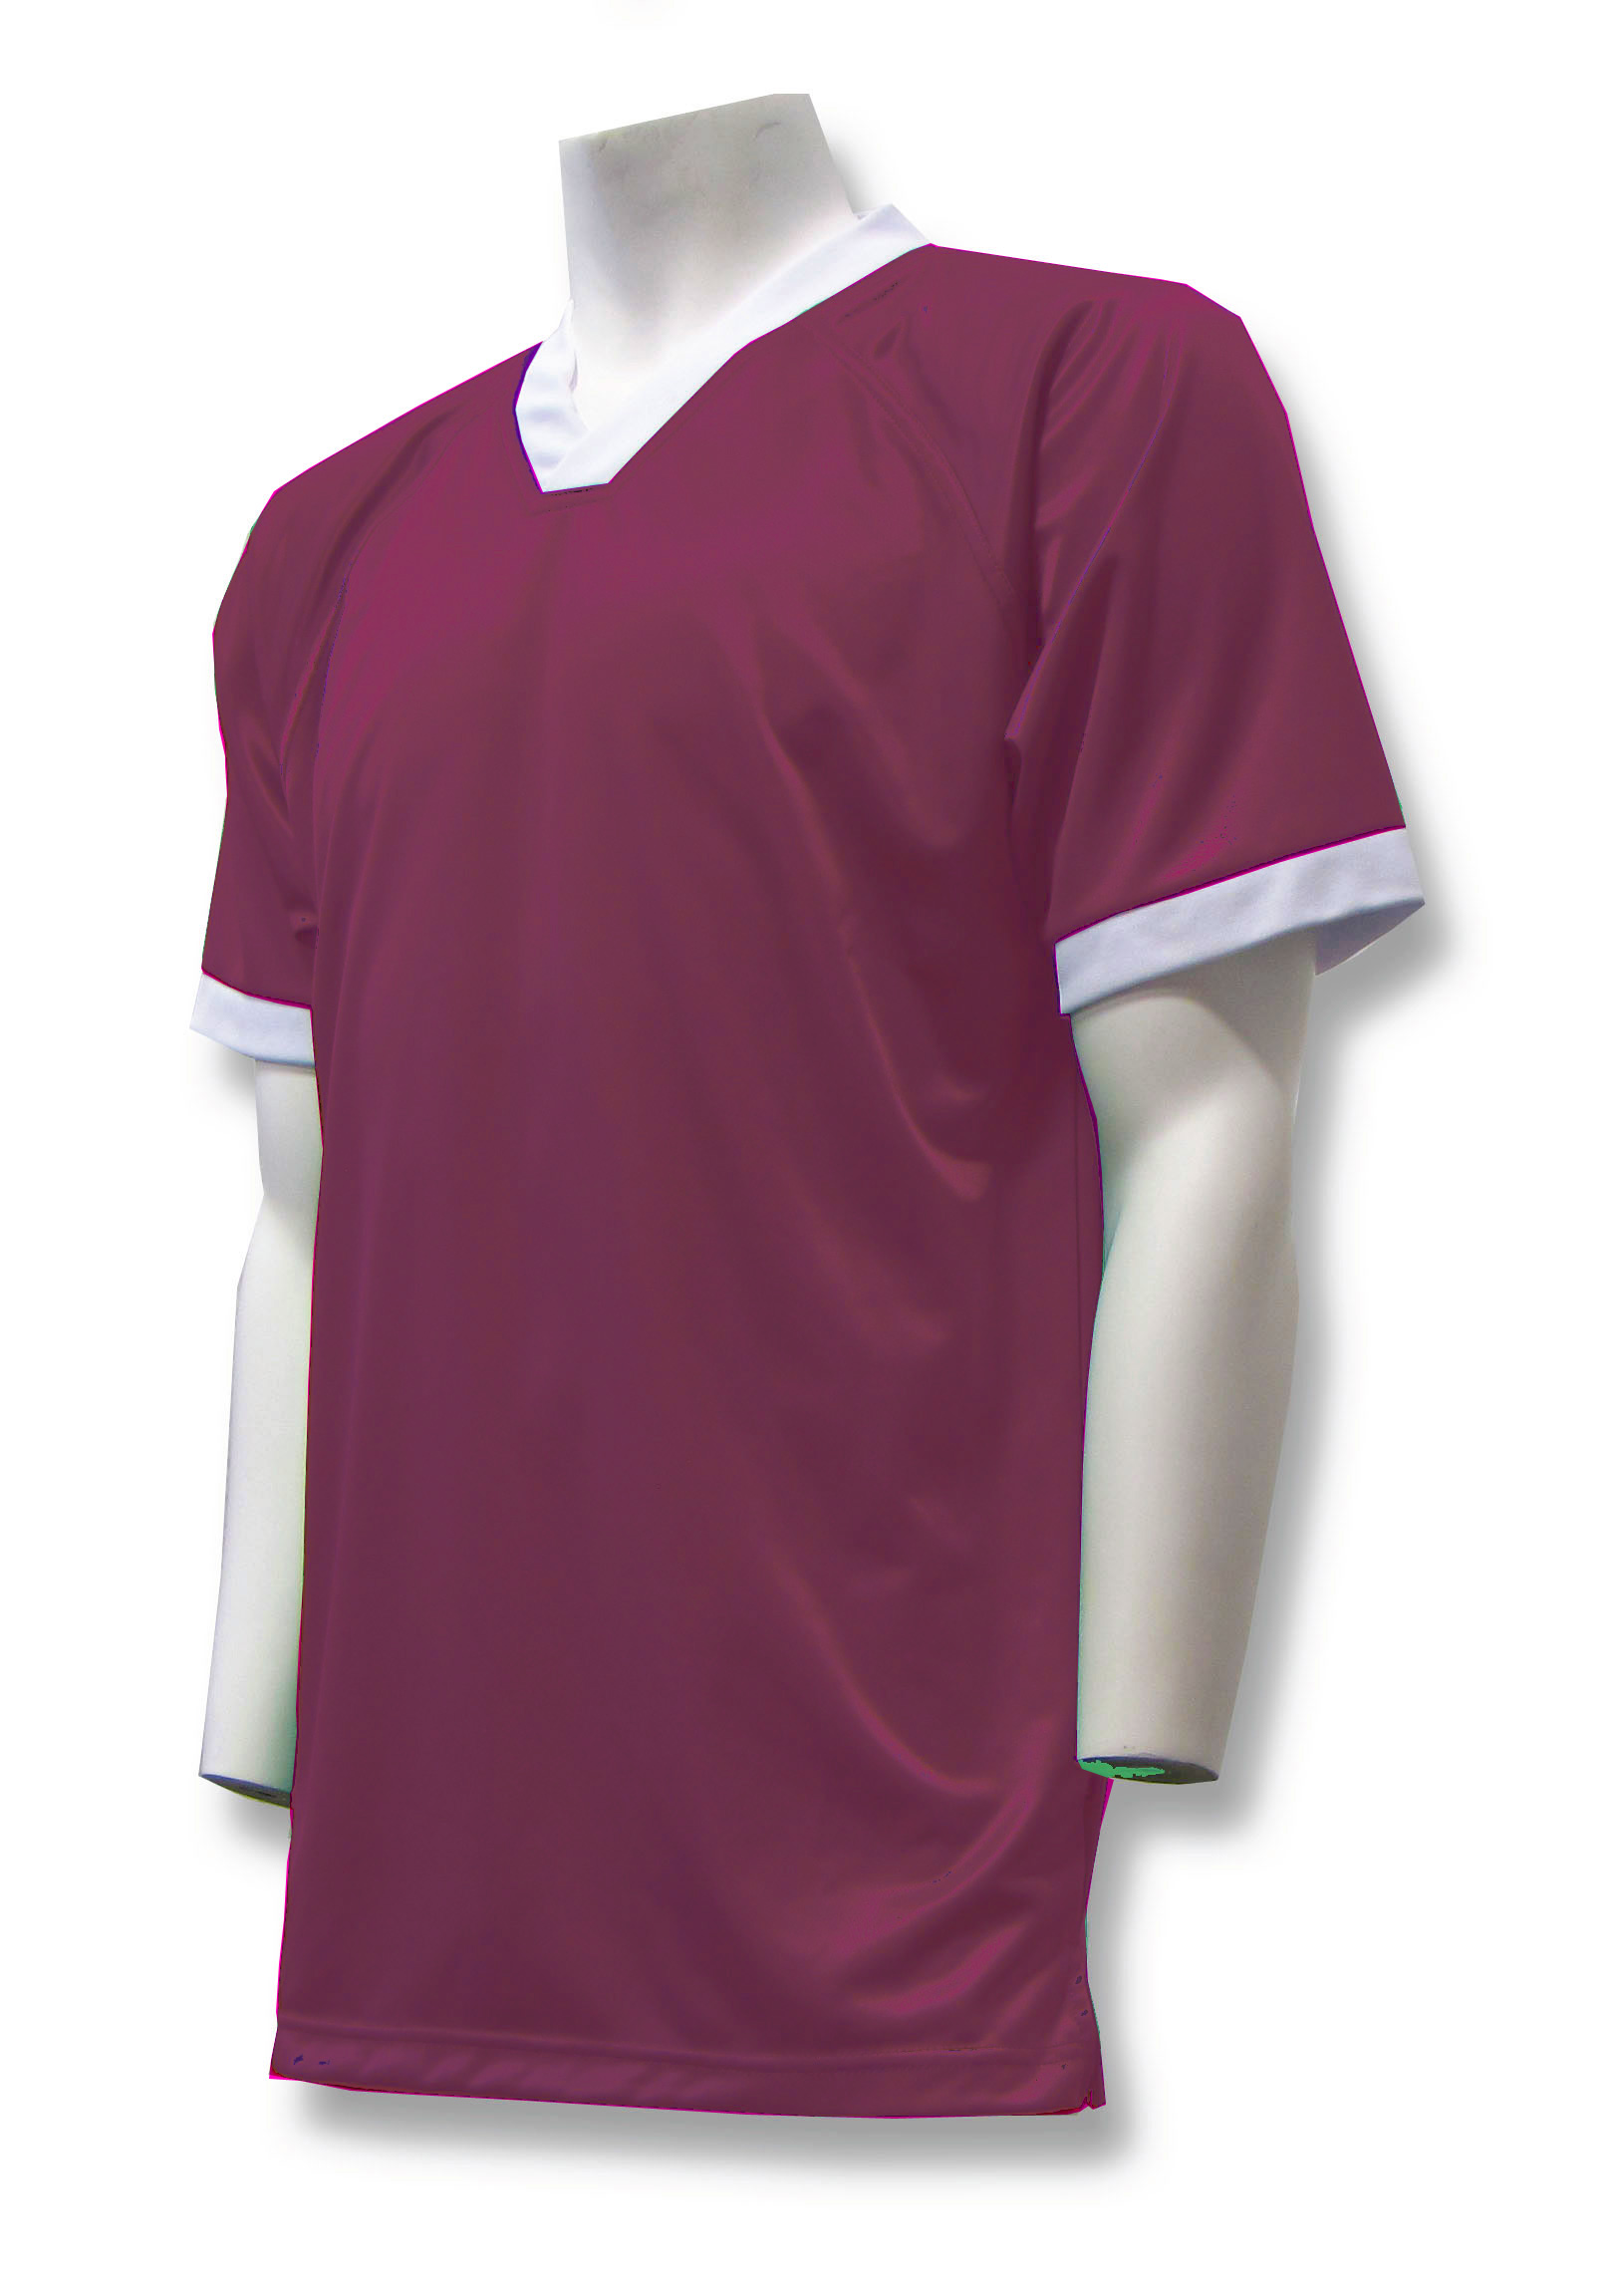 Pioneer soccer jersey in maroon by Code Four Athletics